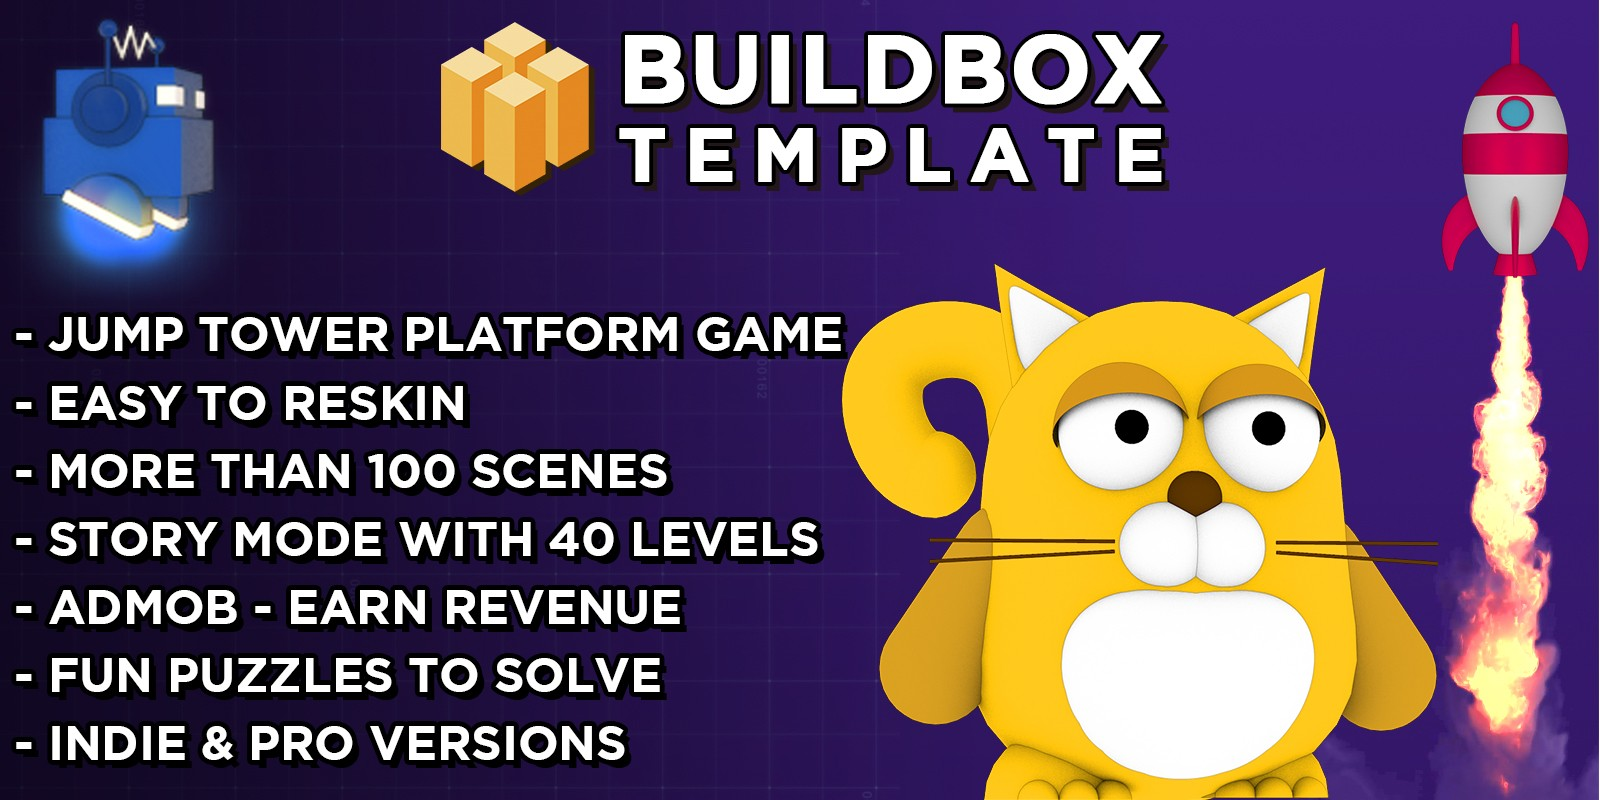 Cool Cat Buildbox Template